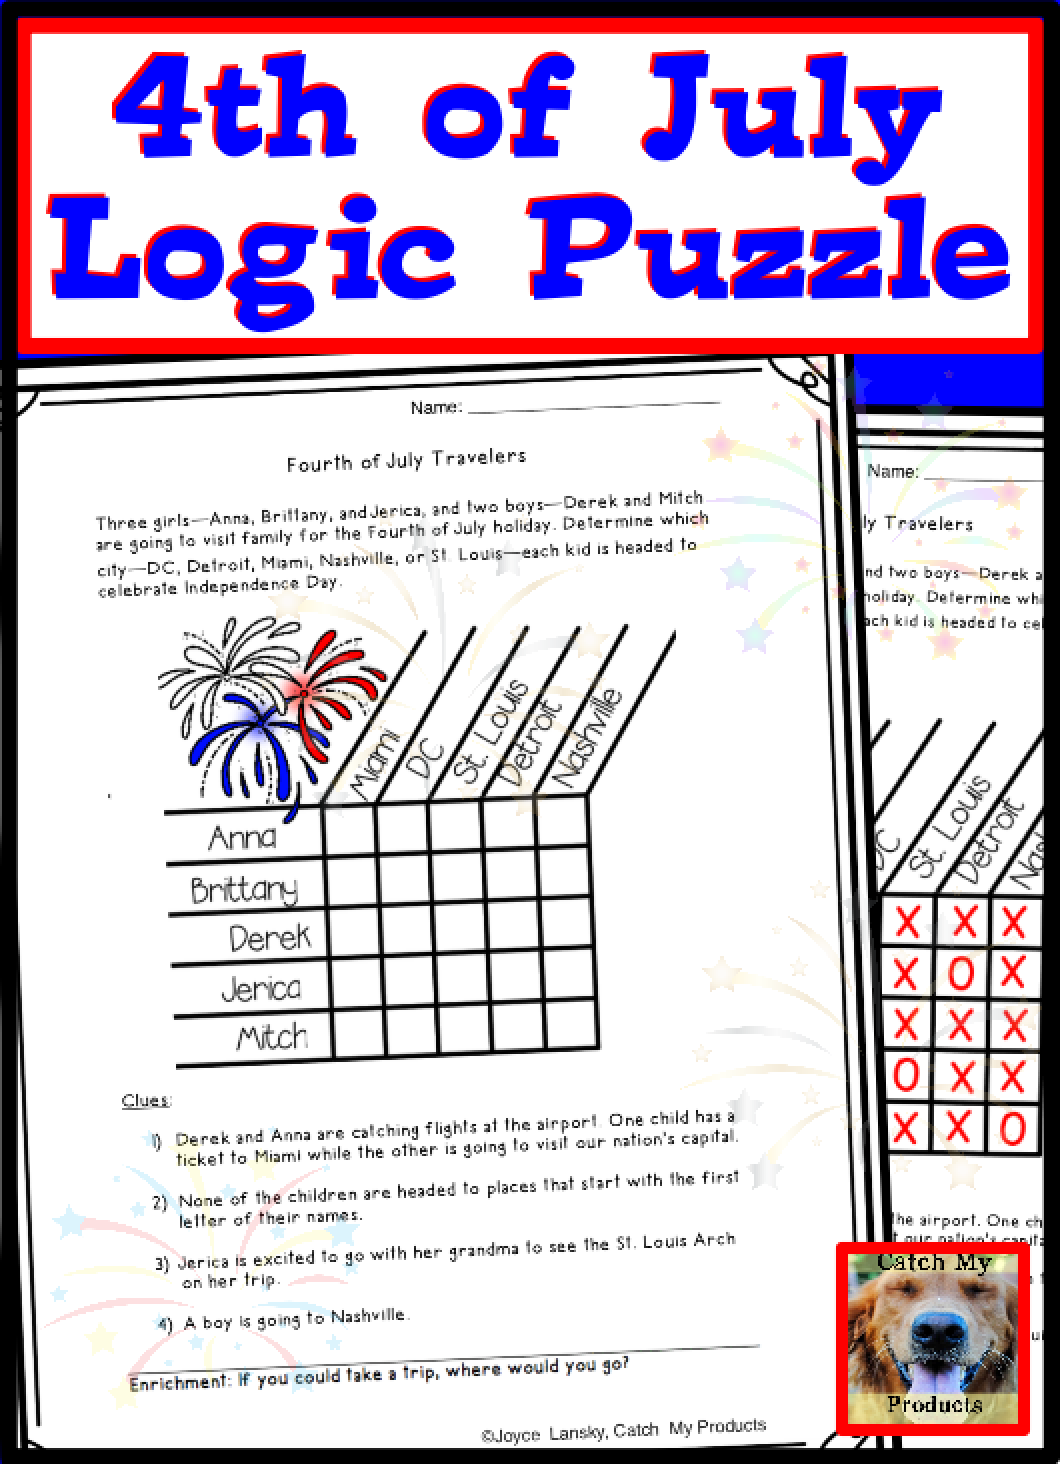 4th of July Worksheet   Printable or Google Doc Ready   Logic puzzles [ 1464 x 1060 Pixel ]